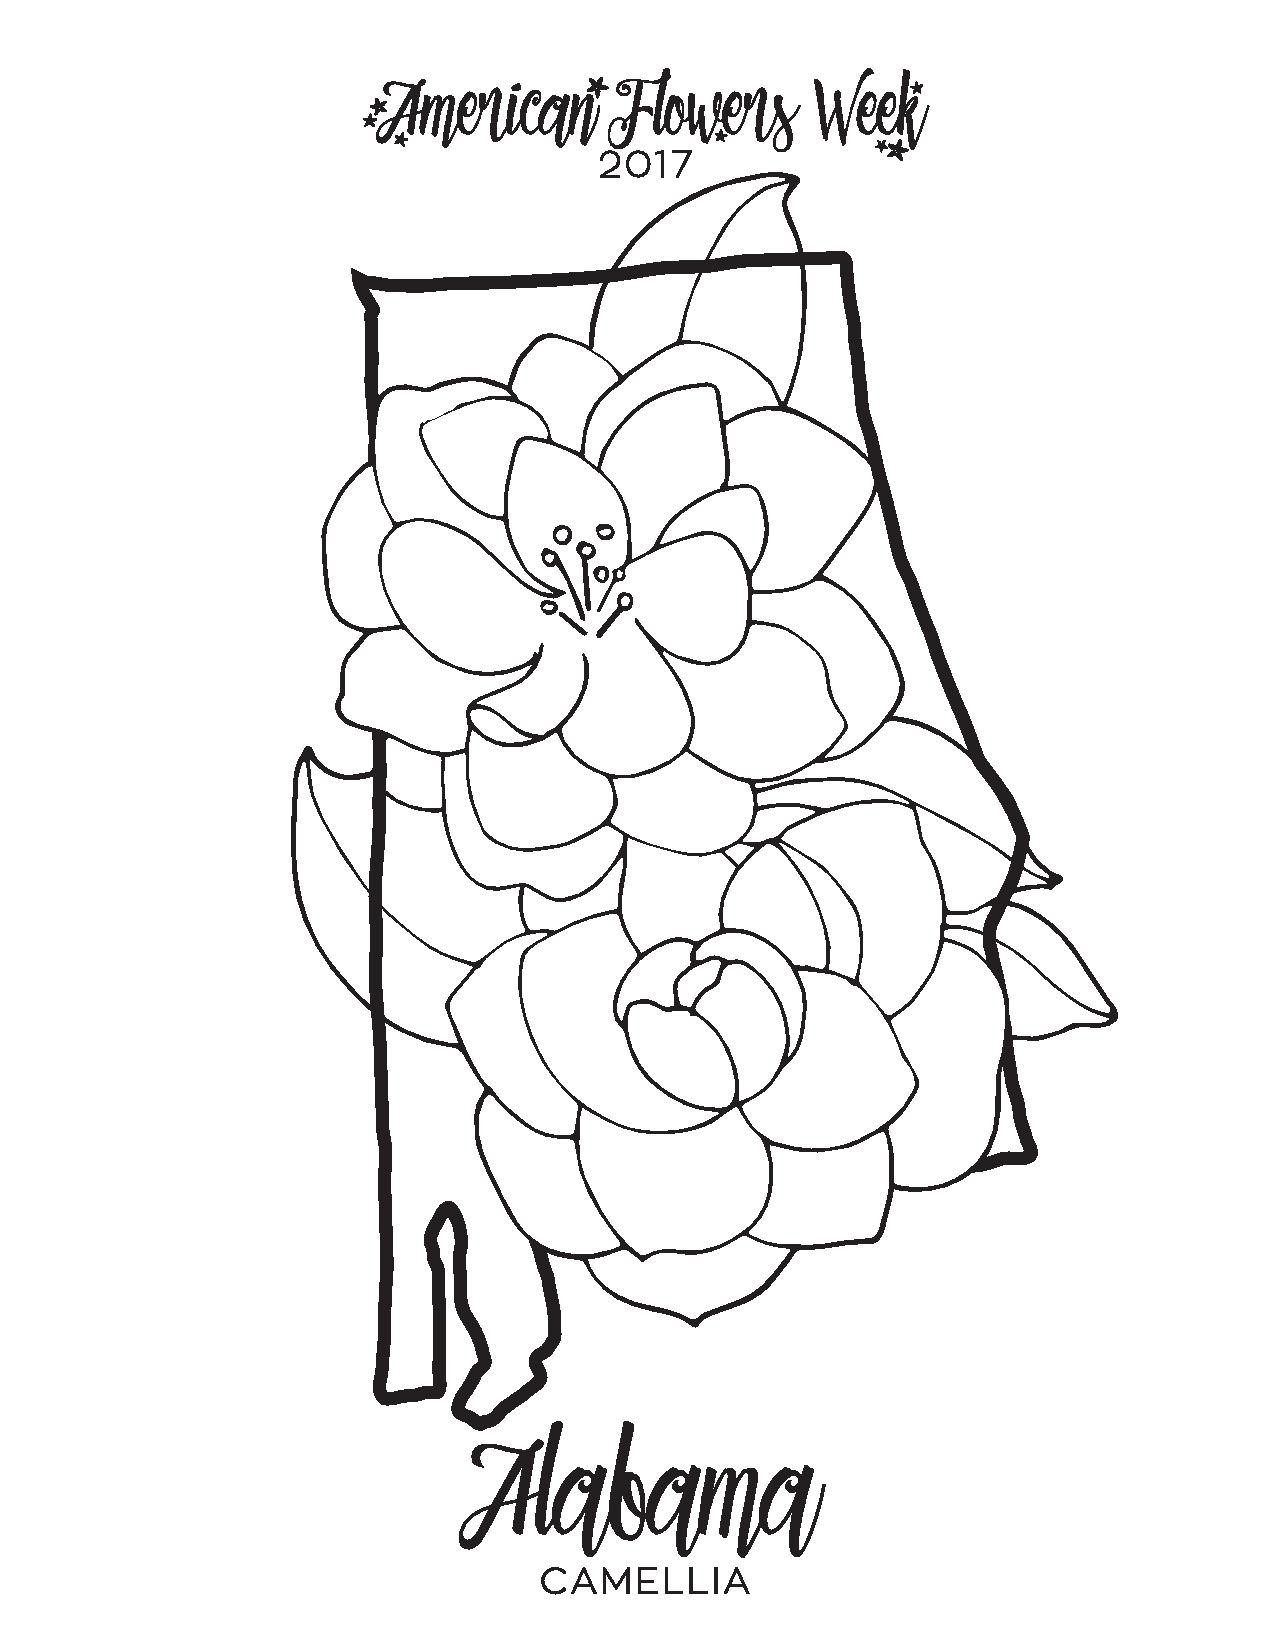 New York State Flag Coloring Page At Getcolorings